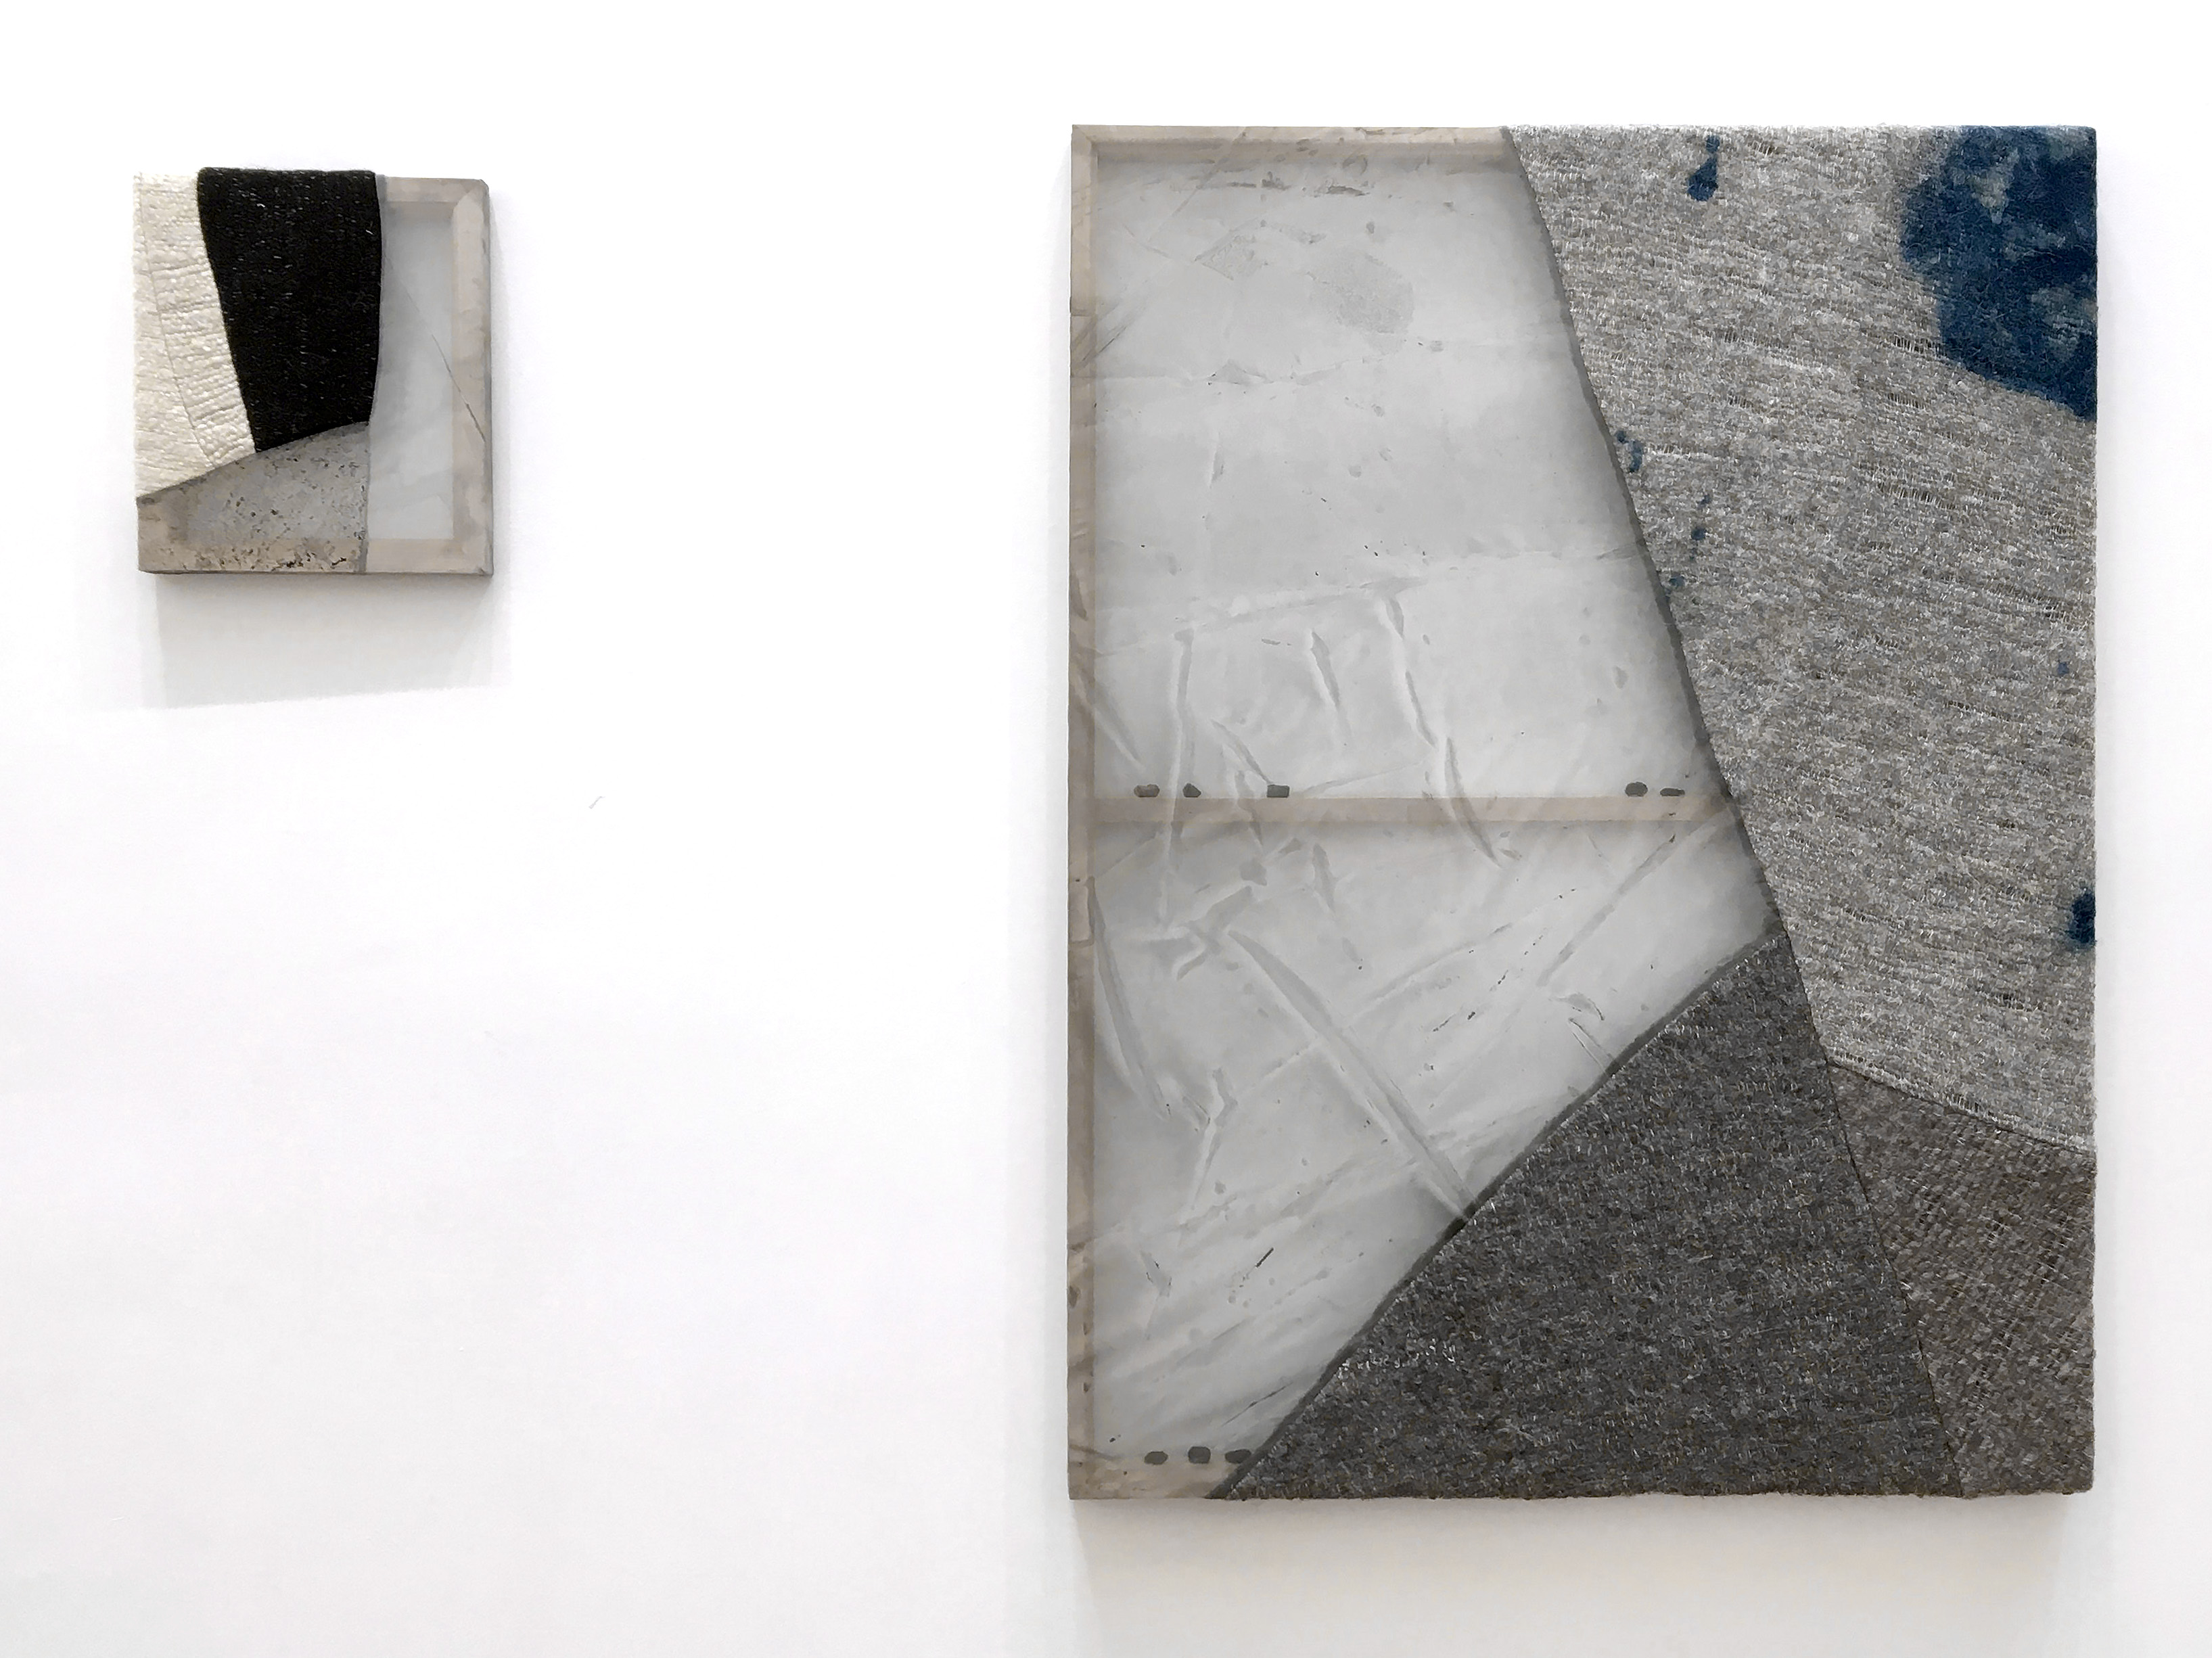 SUTURES Mountains On Mountains 2018 Wool, silk, pigment, dye, obsidian, bronze Left: 12 x 10 in (30.5 x 25.4 cm) Right: 41 x 31 in (104.1 x 78.7 cm) 2018 Marc Straus Gallery